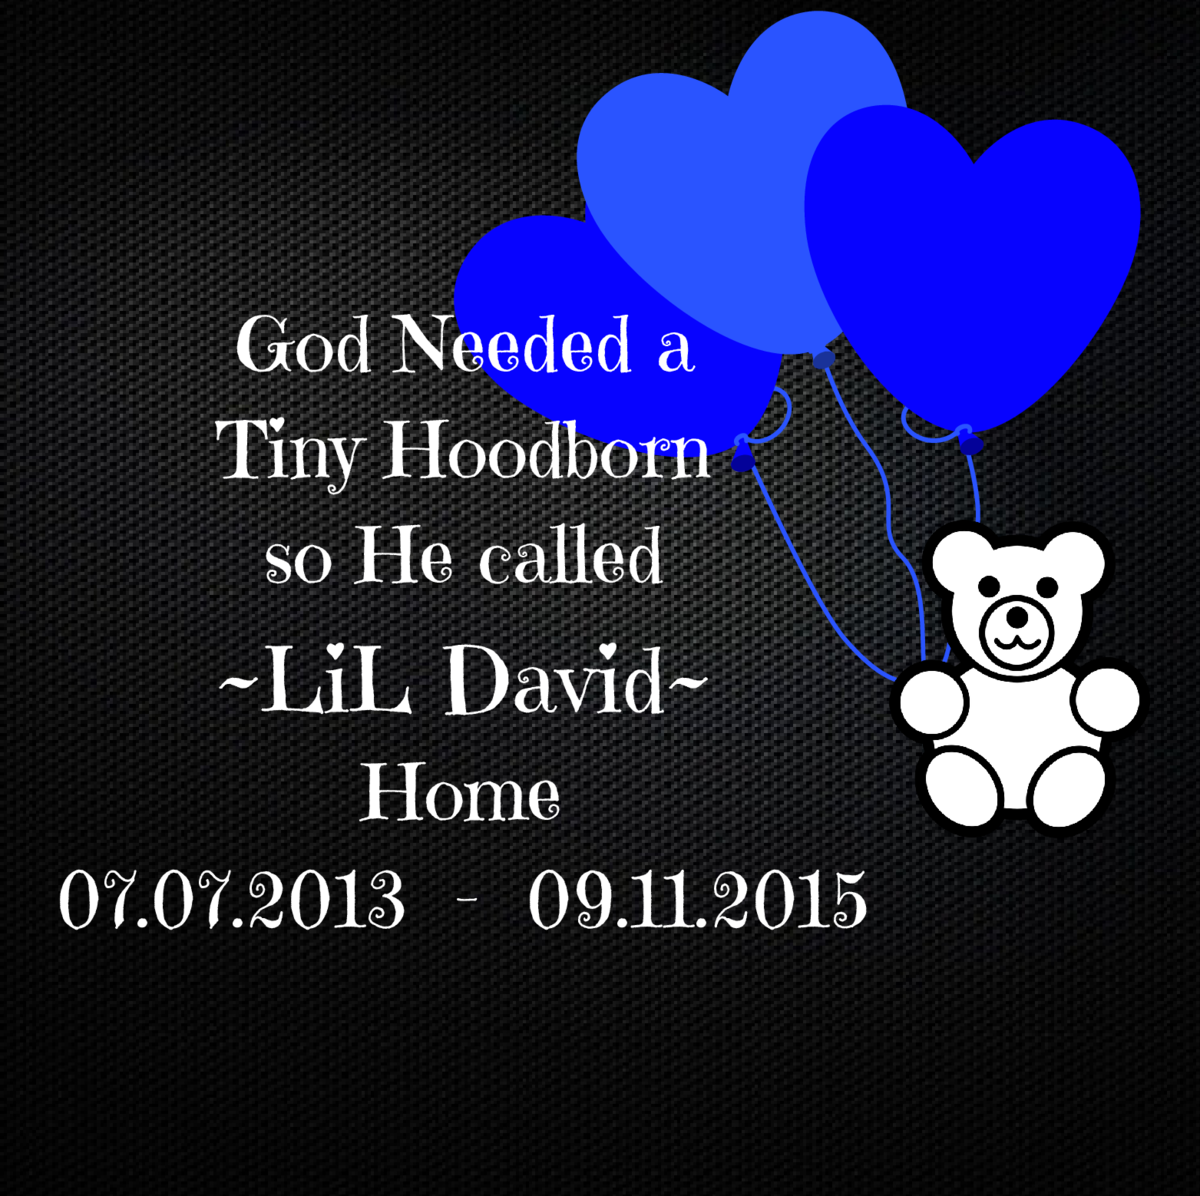 God Needed a Tiny Hoodborn so He called   LiL David  Home 07.07.2013 - 09.11.2015